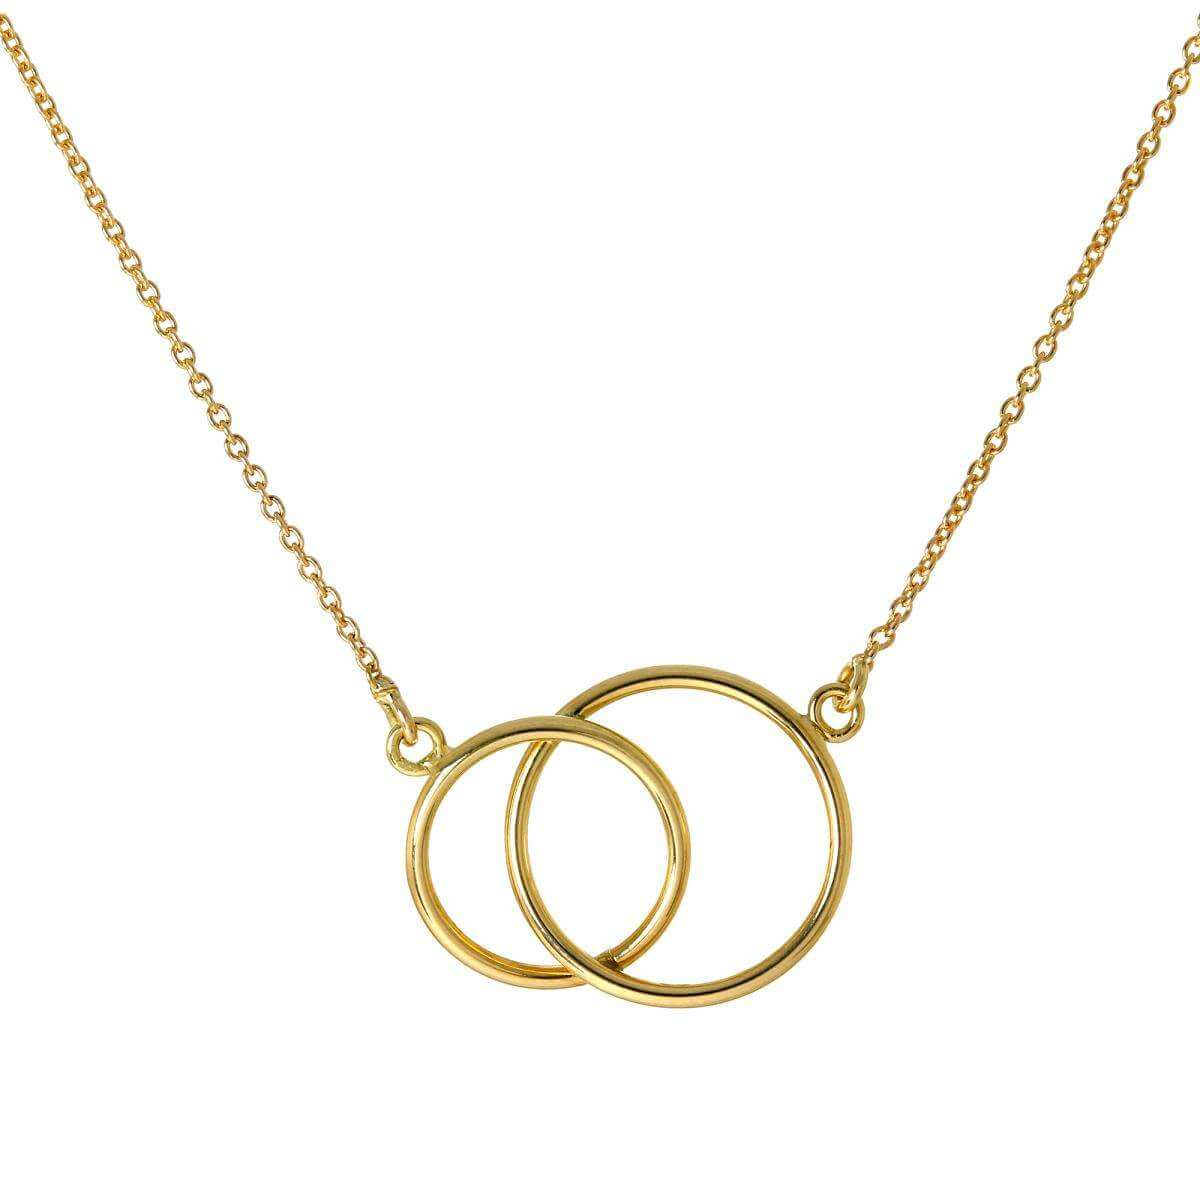 9ct Gold Interlocking Hoop Pendant 16 Inch Necklace